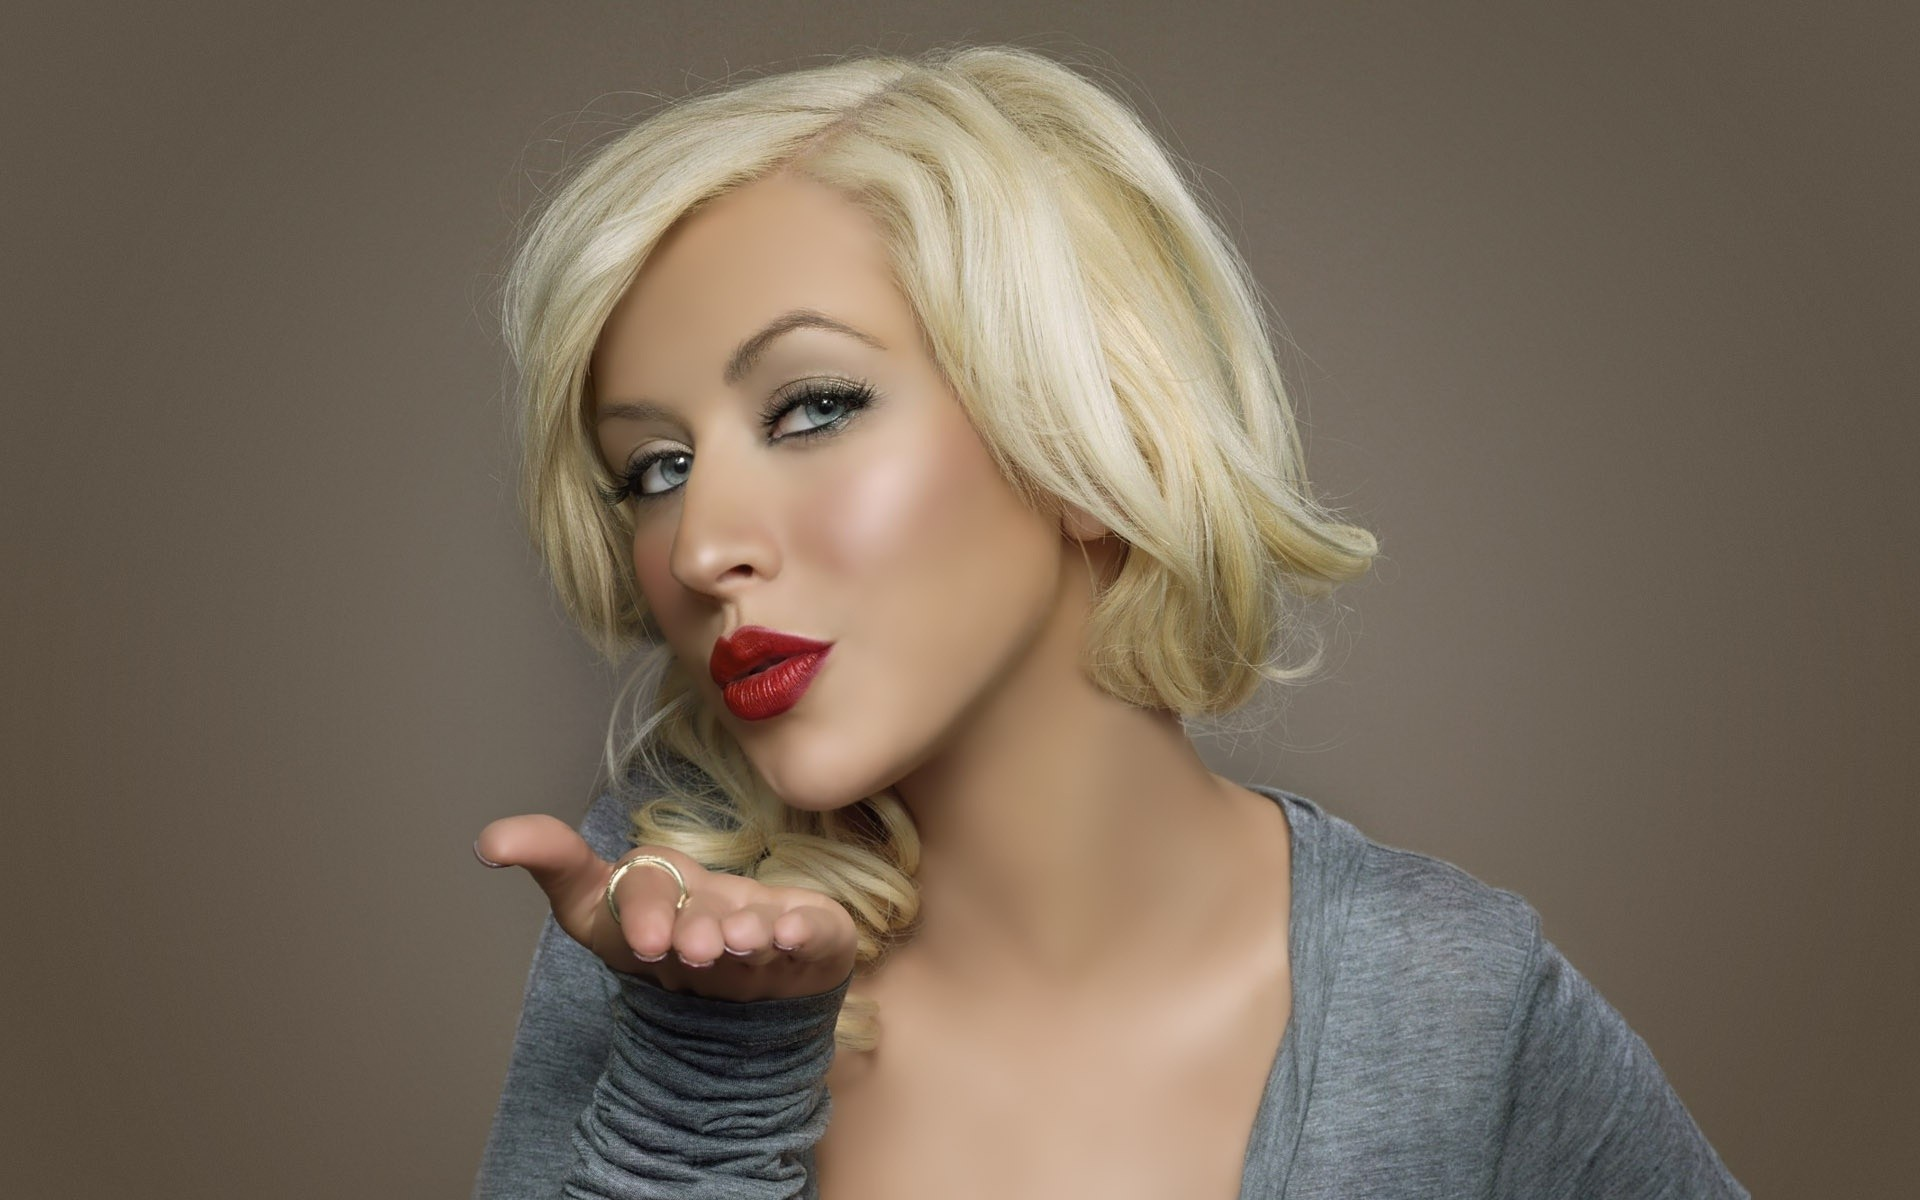 Christina Aguilera Kiss Celebrity HD Wallpaper 4648 HD Wallpaper 1920x1200